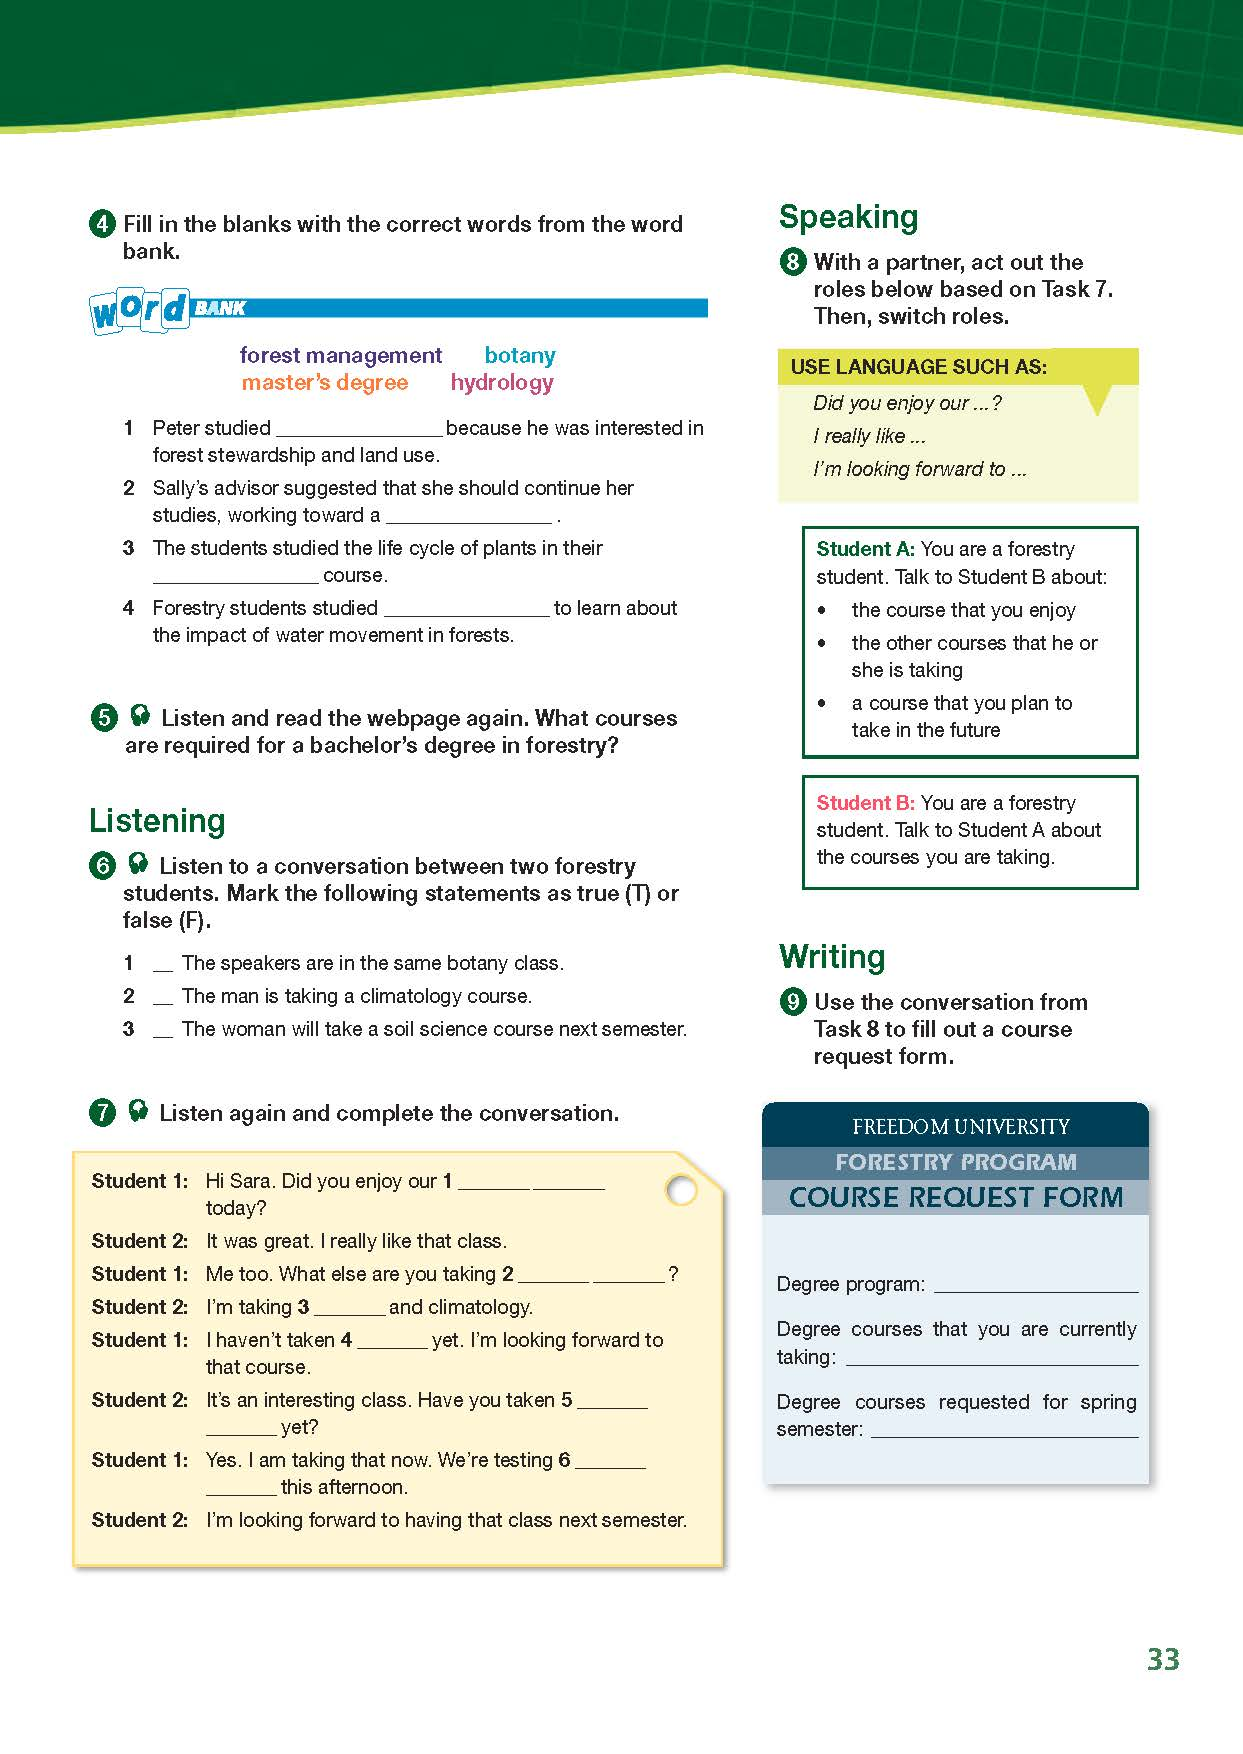 ESP English for Specific Purposes - Career Paths: Natural Resources I Forestry - Sample Page 4